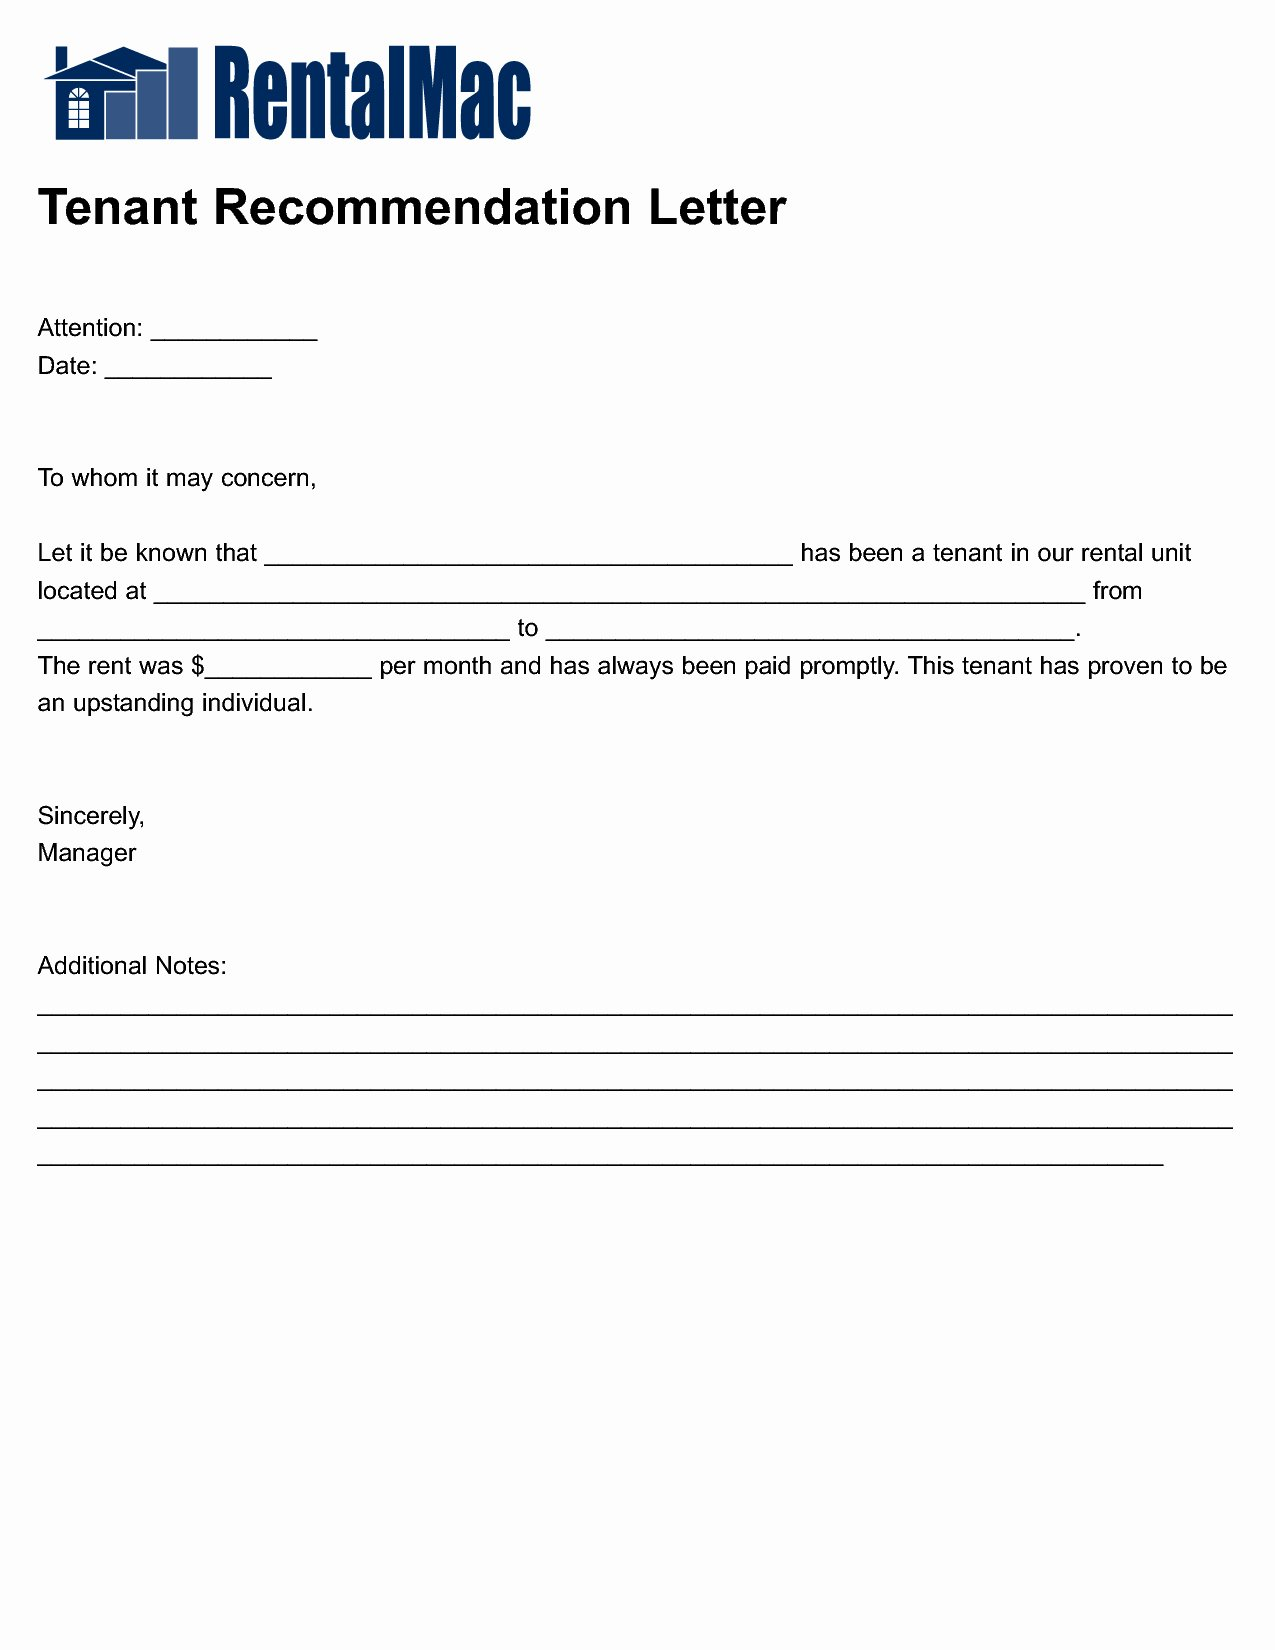 Rental Reference Letter Template Awesome Rental Reference Letter Template Collection